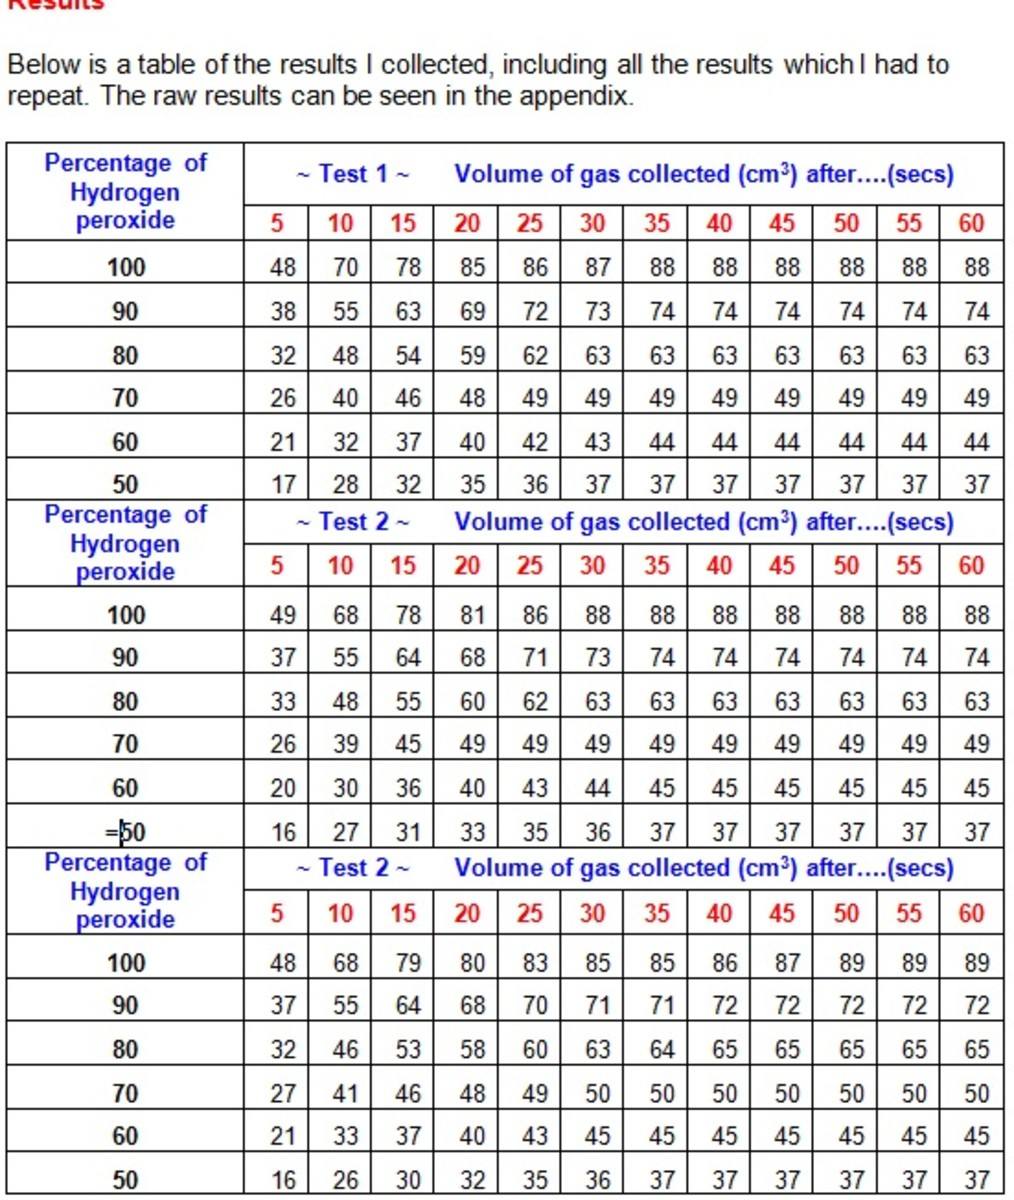 Figure 4. Full table of results.